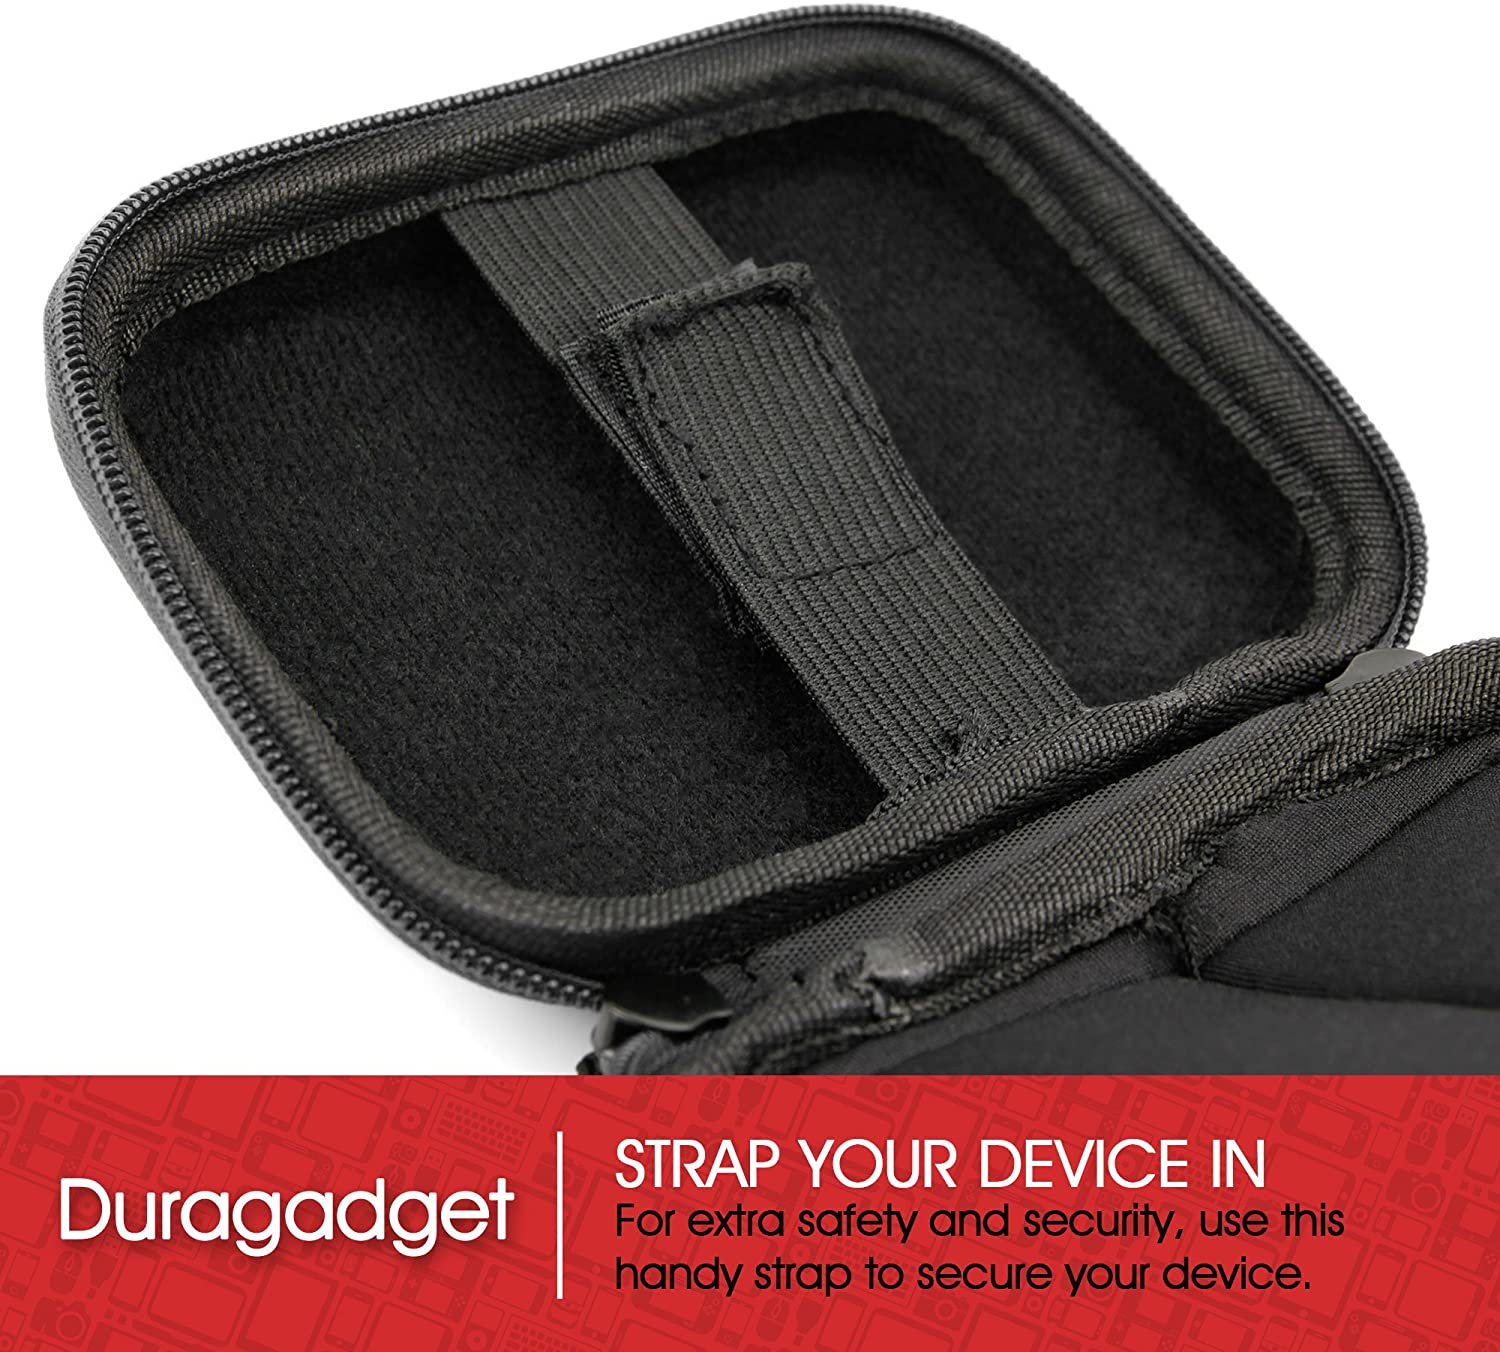 Compatible with Sony Bloggie and Sony TX5 DURAGADGET Hard Camcorder Carry Case in Black